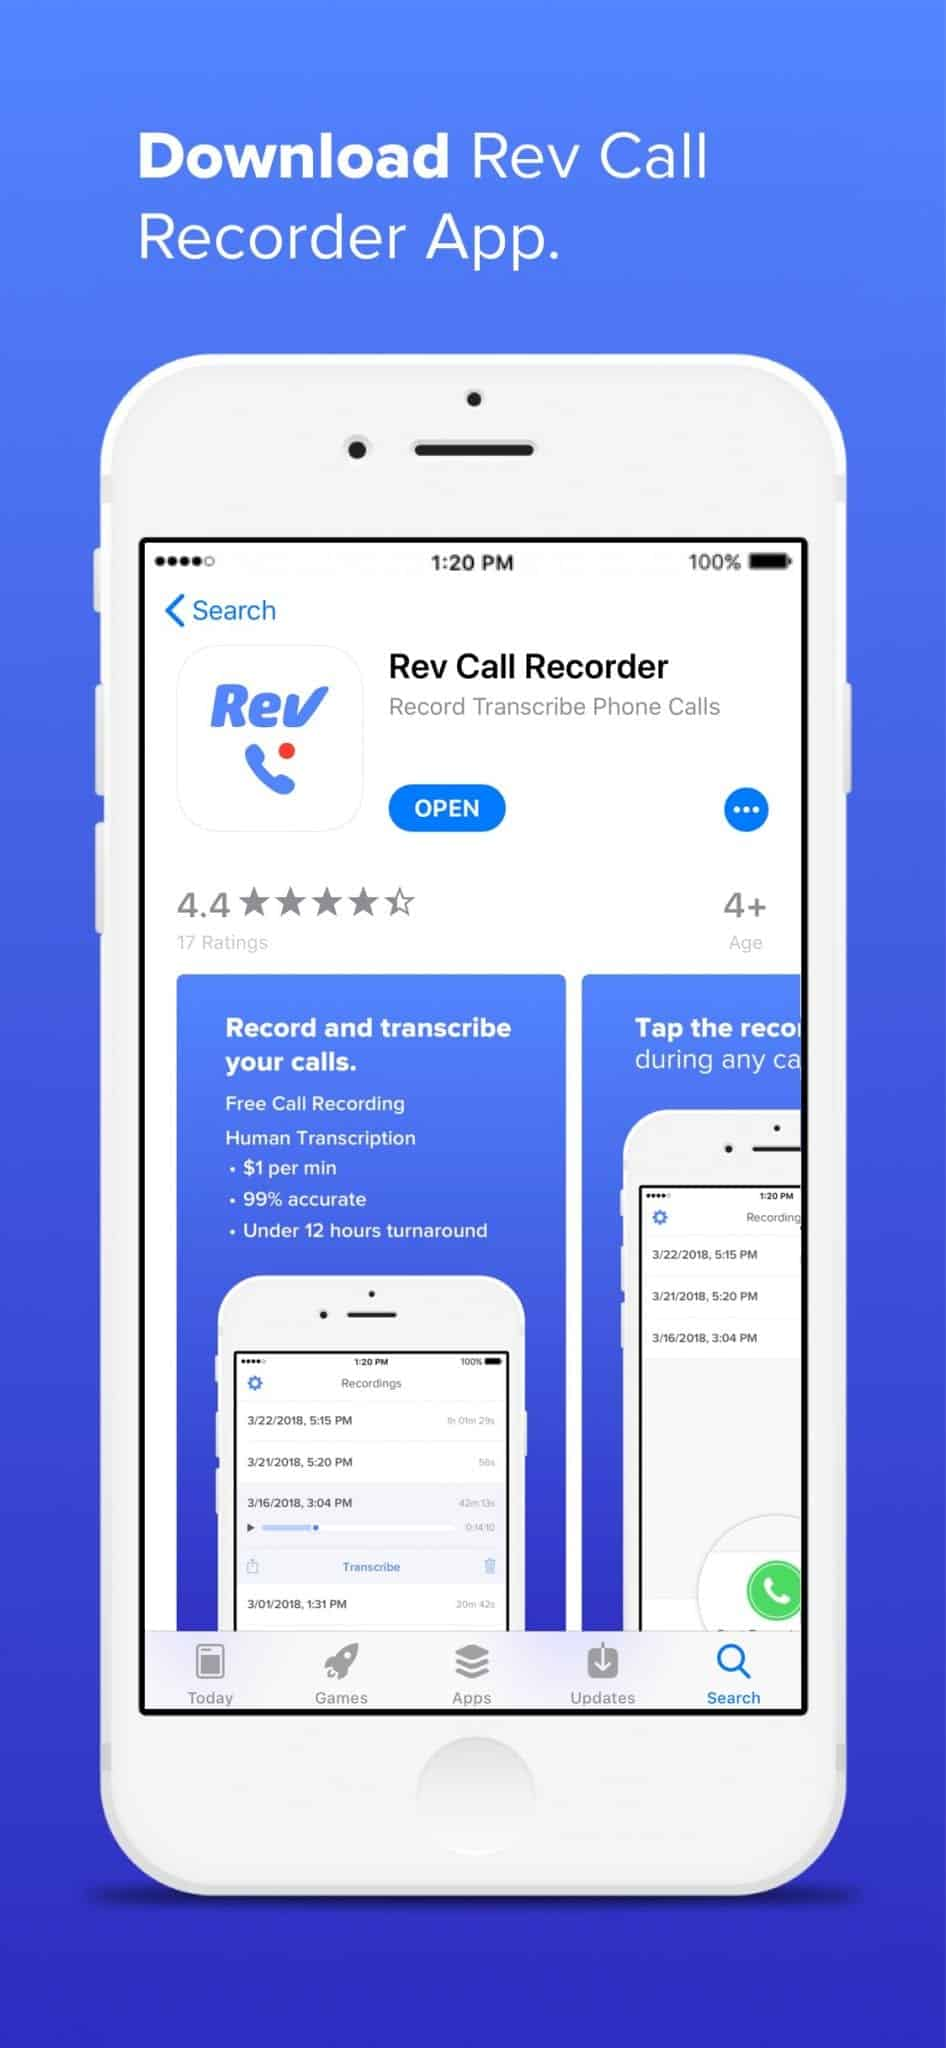 Download Rev Call Recorder